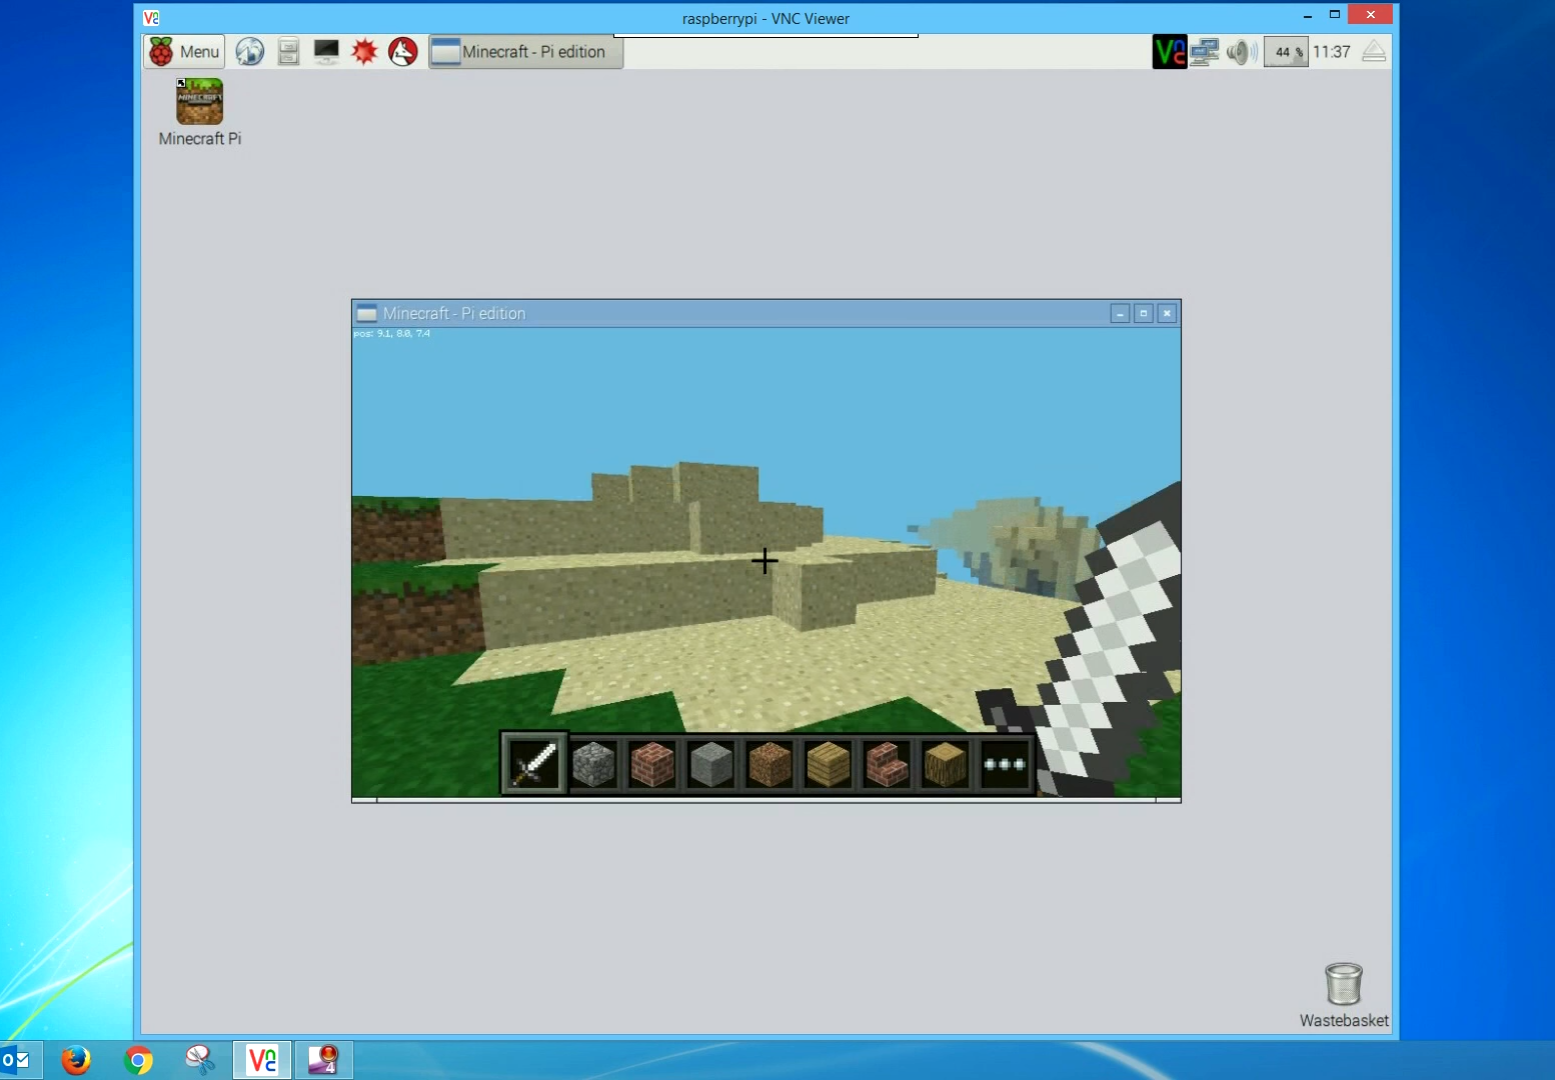 Minecraft Pi (and more) over VNC